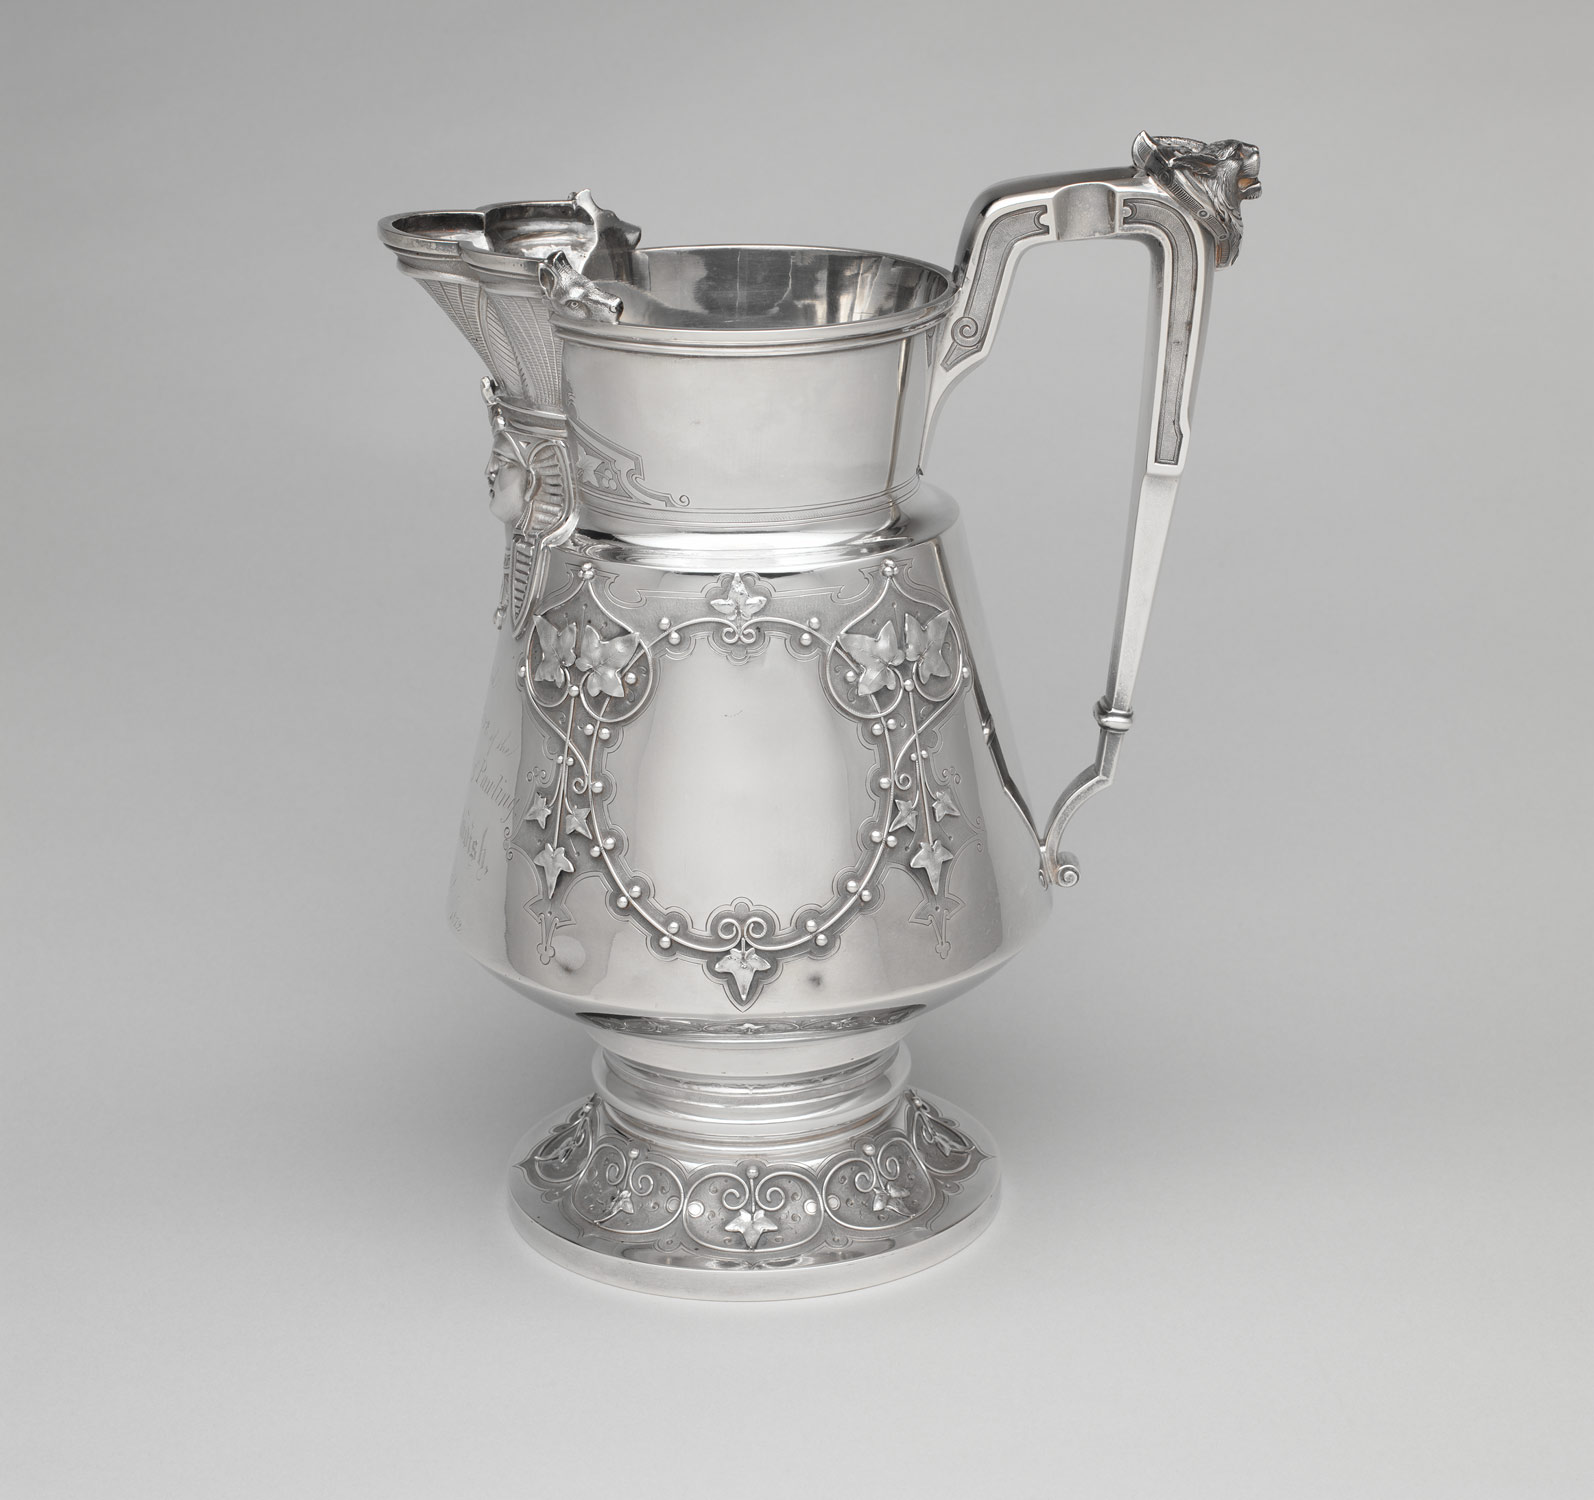 Pitcher, retailed by Ball, Black & Co.